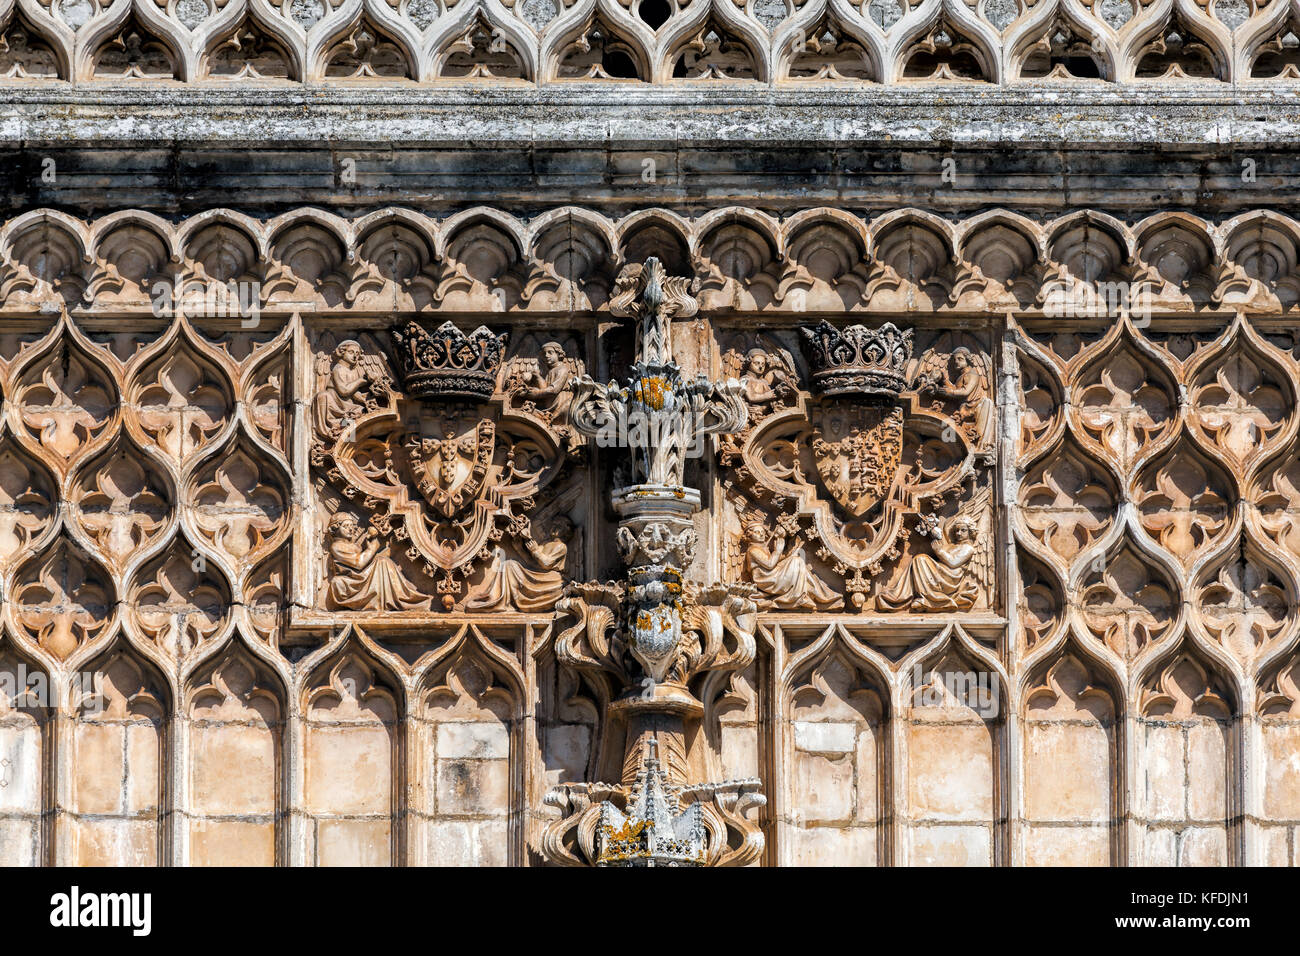 Details of the facade of the 14th century Batalha Monastery in Batalha, Portugal, a prime example of Portuguese - Stock Image